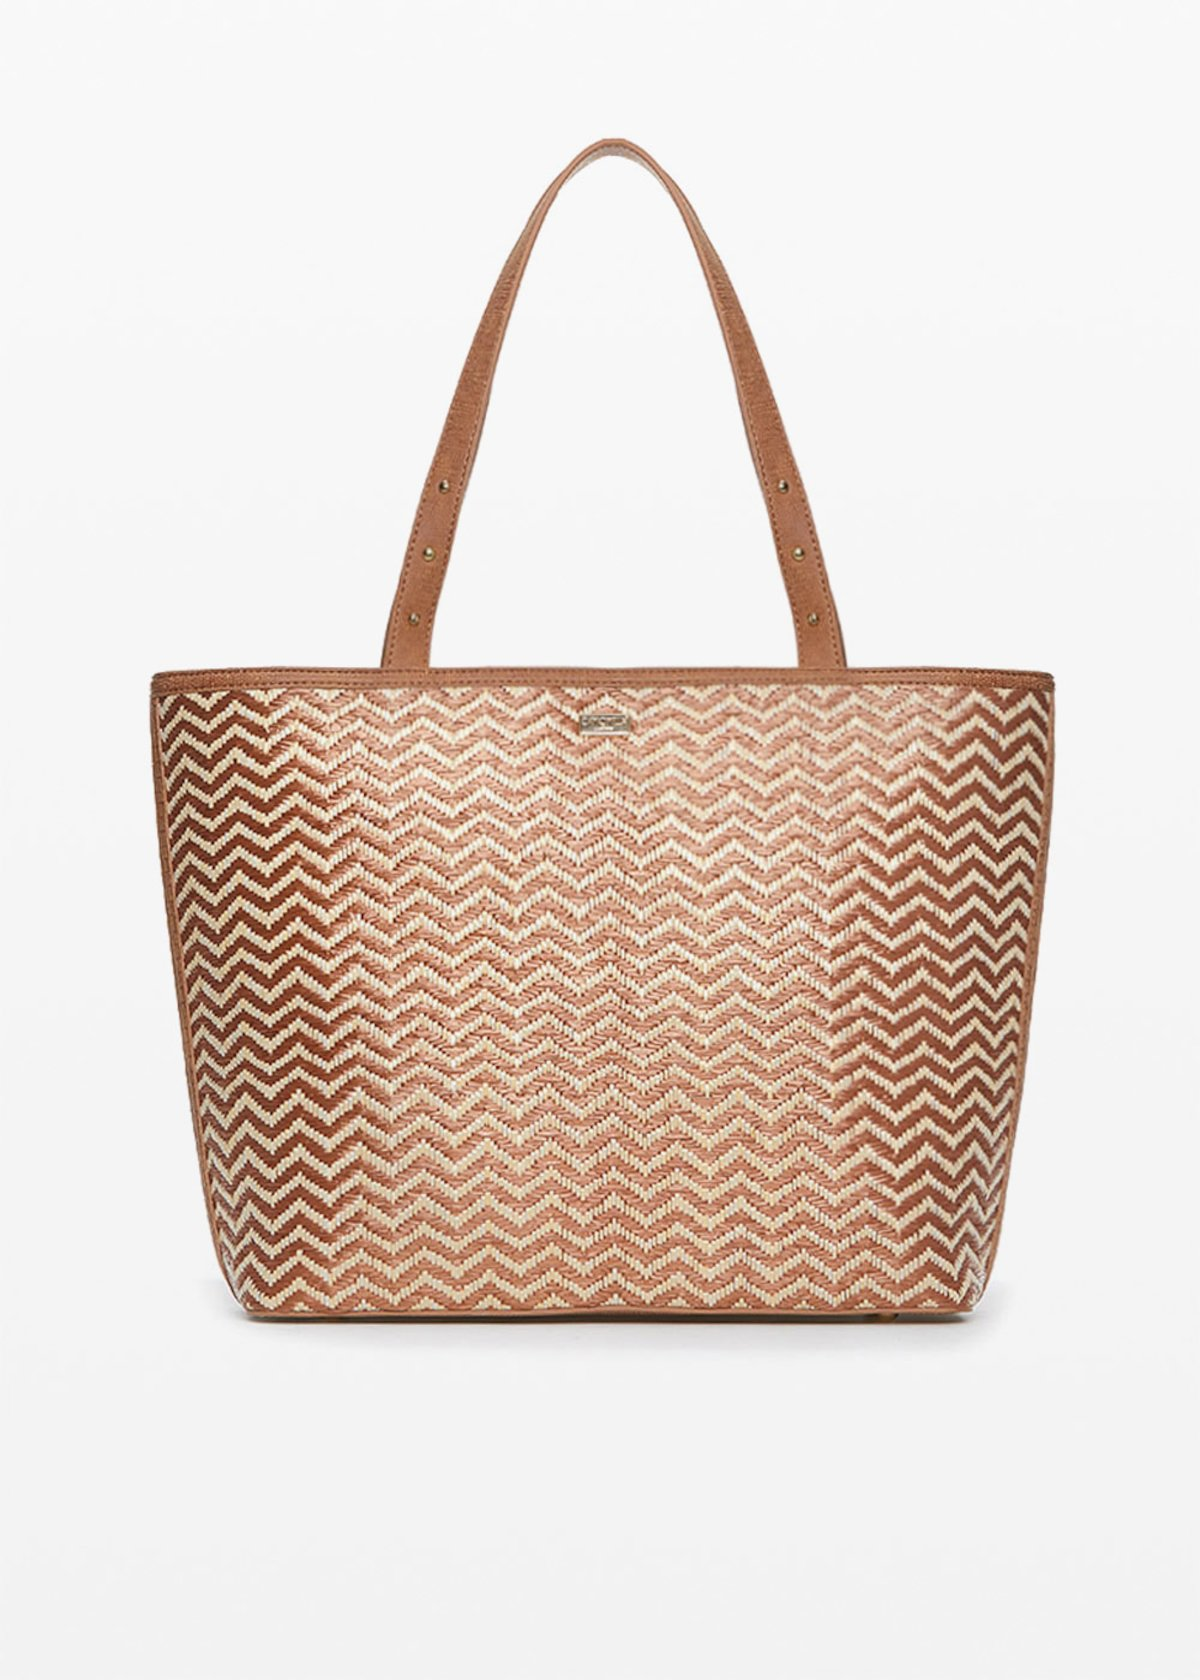 Faux leather and straw Brigitte shopping bag zigzag design